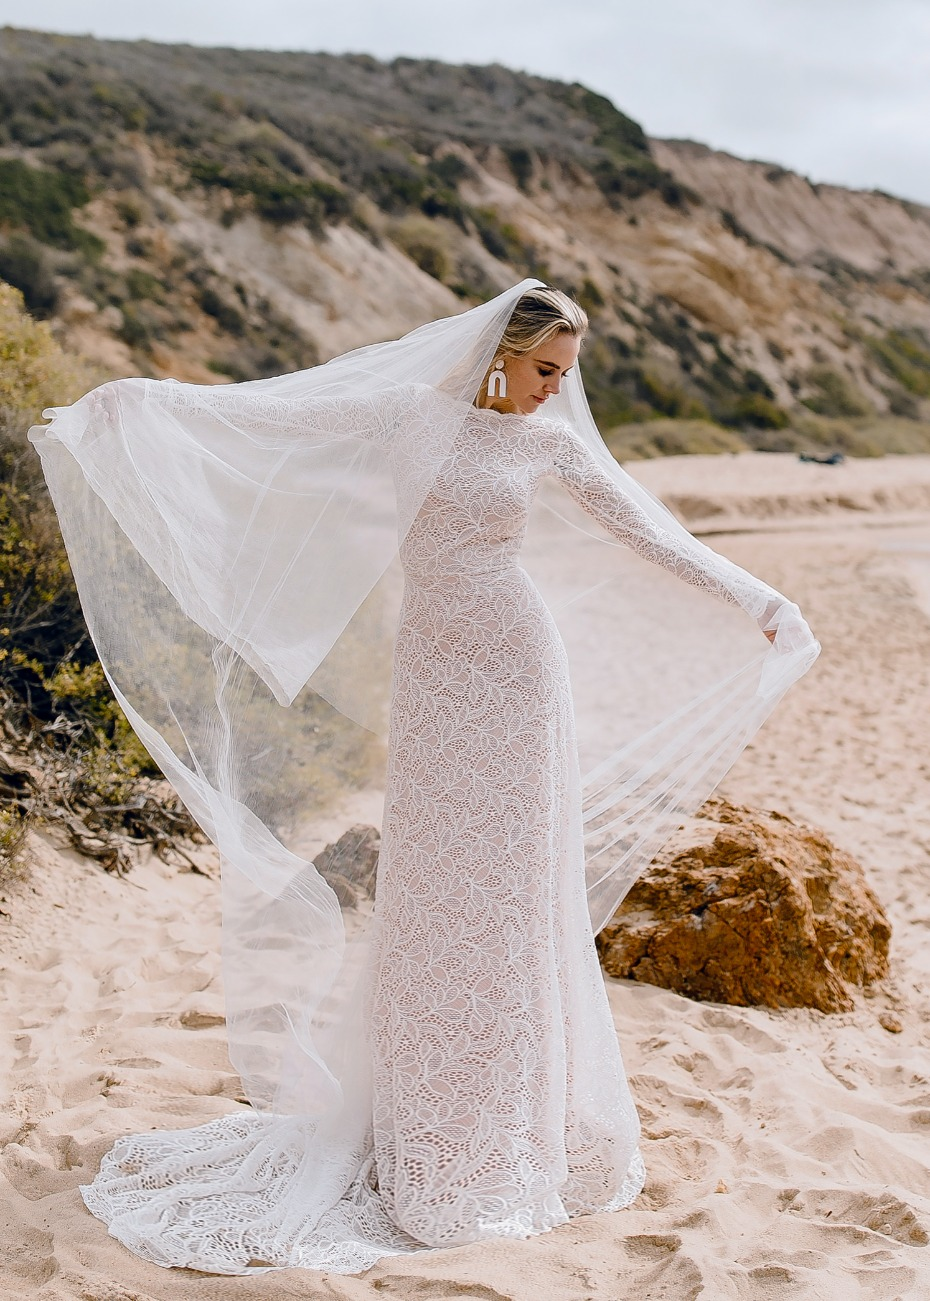 Wear Your Love Has a New Bridal Collection and You're Going to 'Grow' Crazy Over It